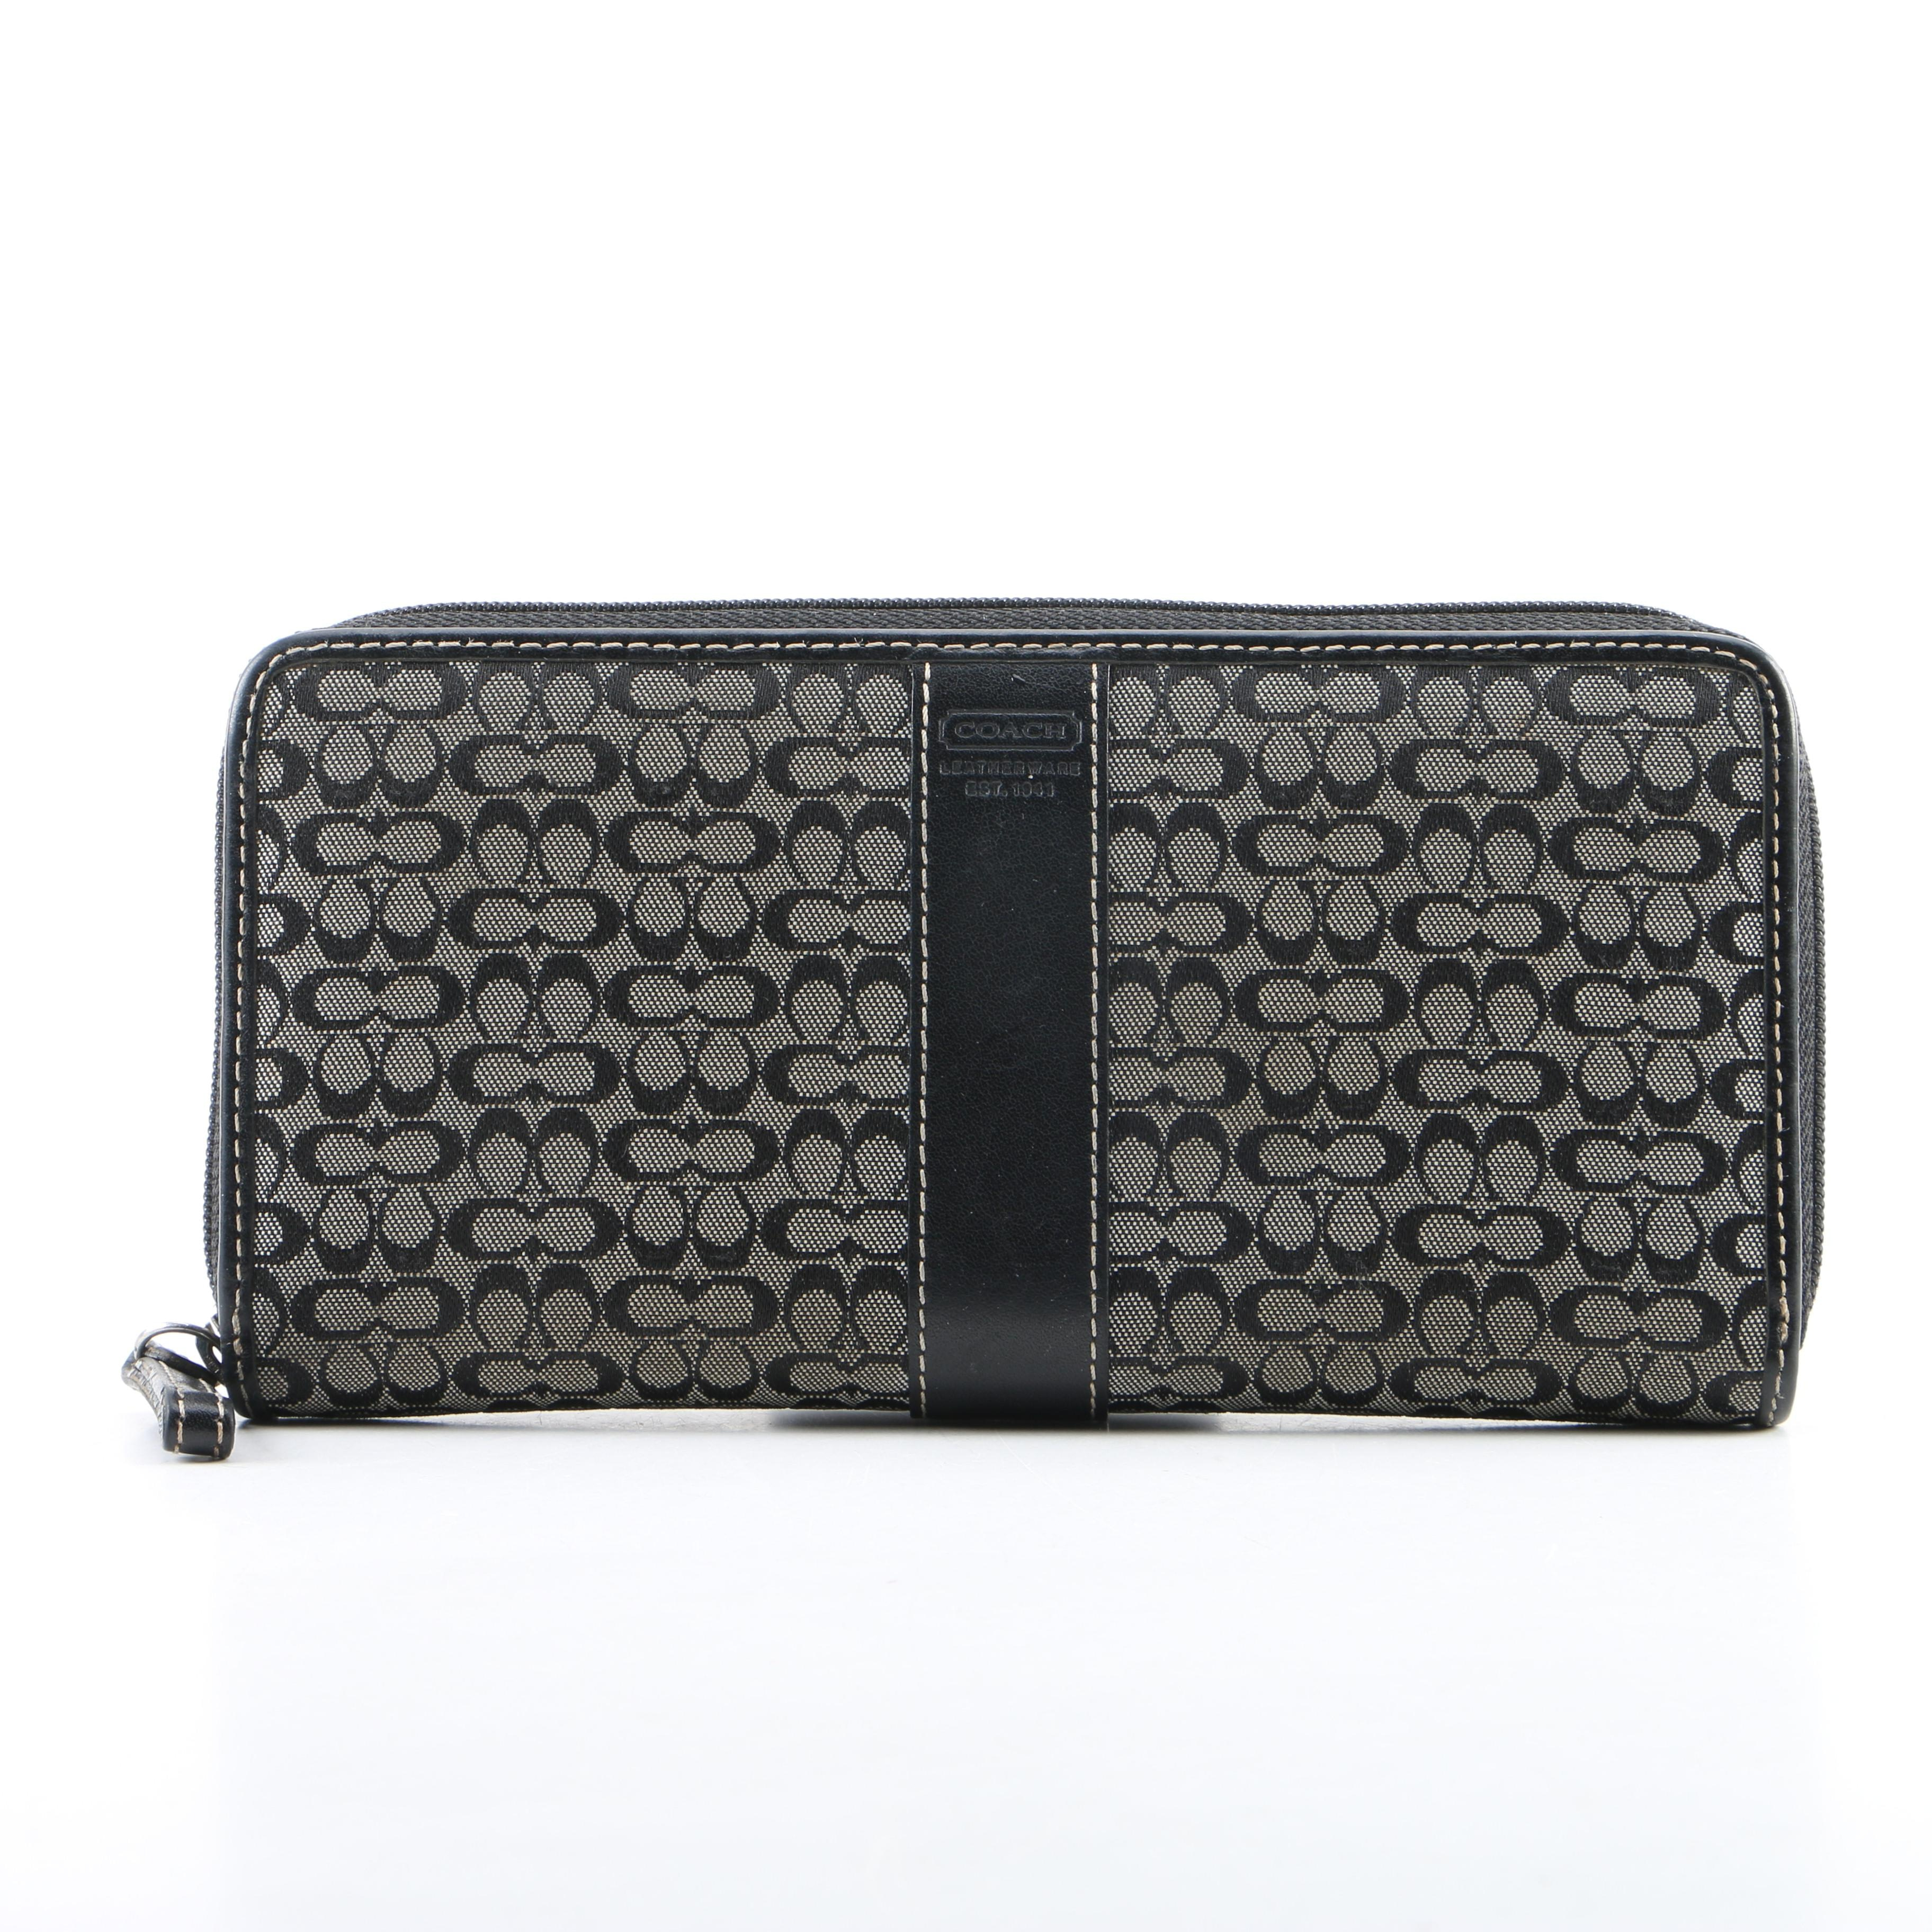 Coach Grey and Black Signature Stripe Canvas and Leather Wallet